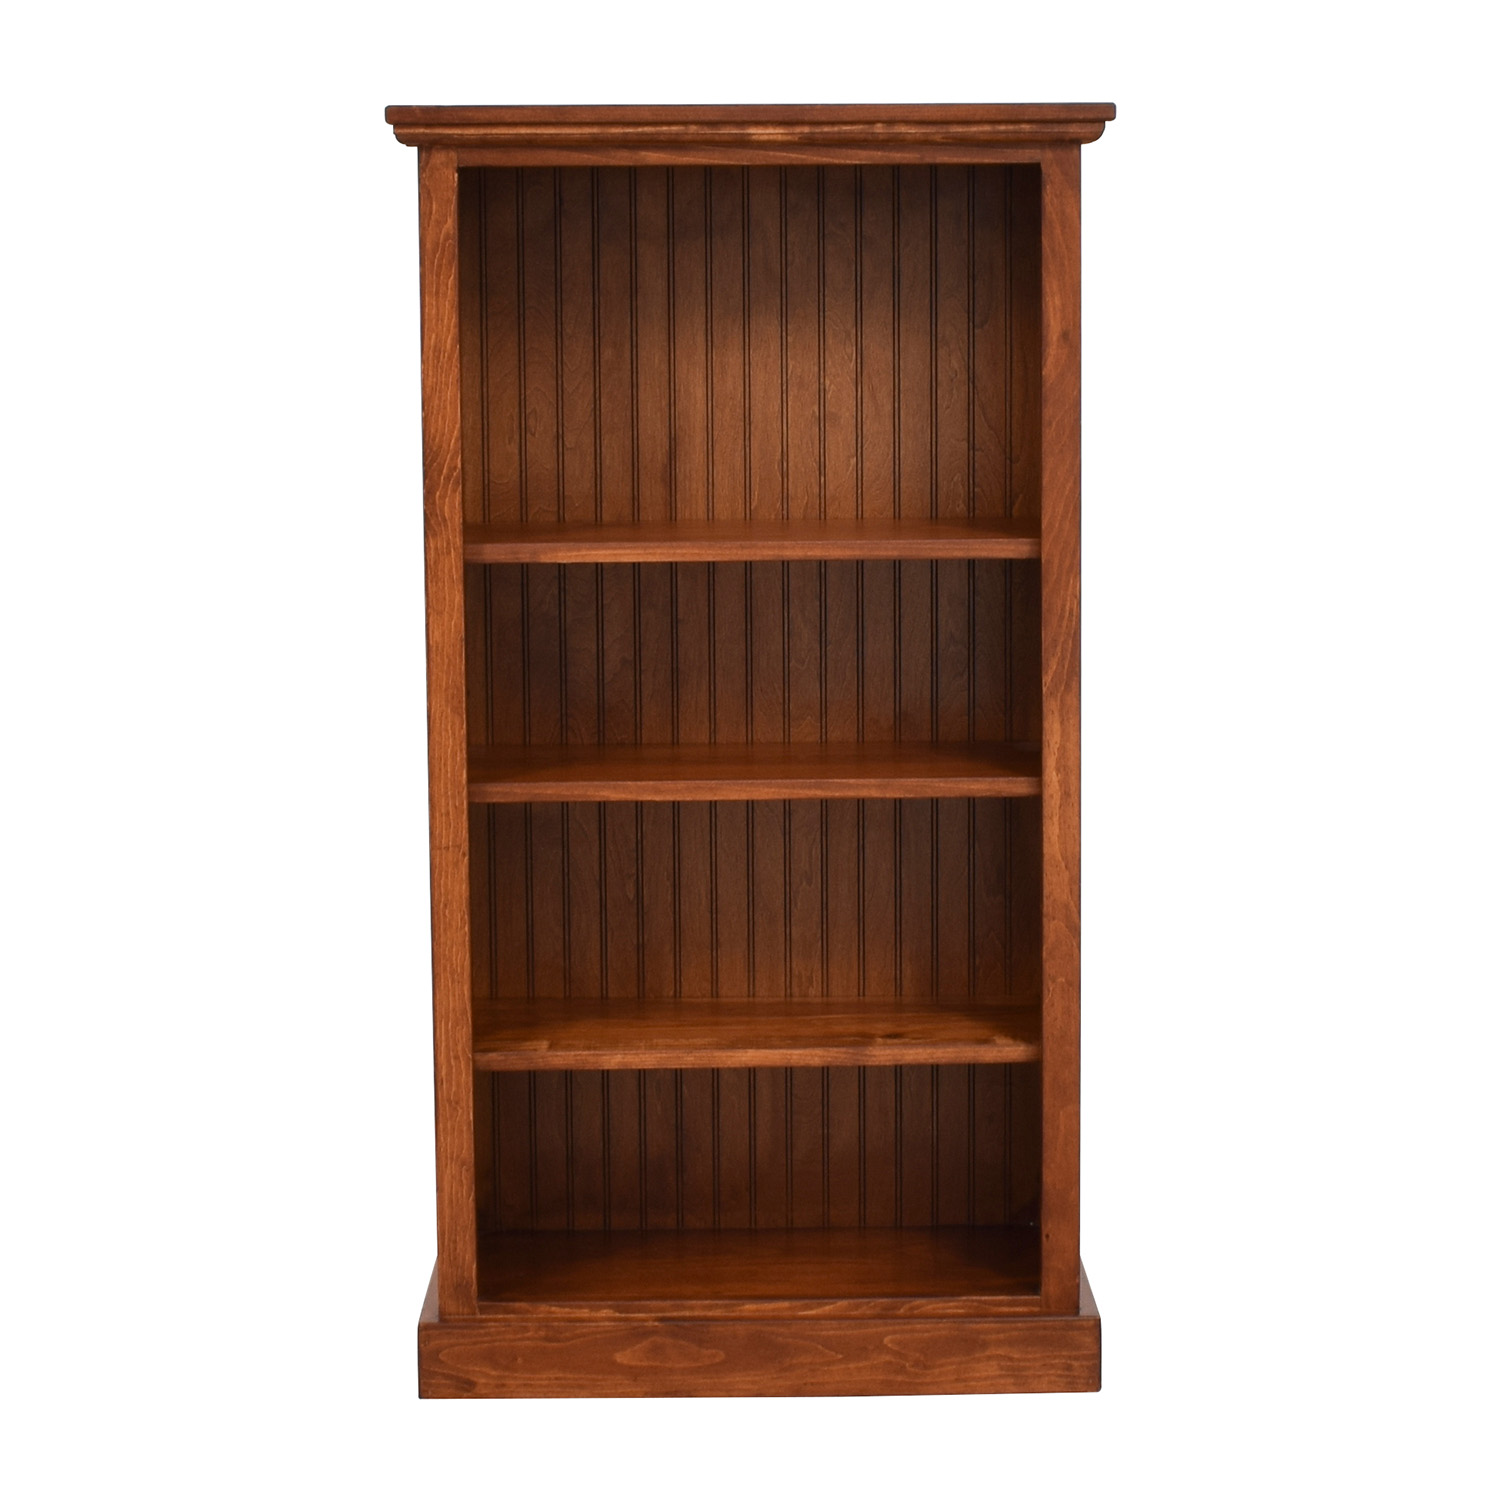 Gothic Cabinet Craft Gothic Cabinet Craft Four Shelf Bookcase for sale